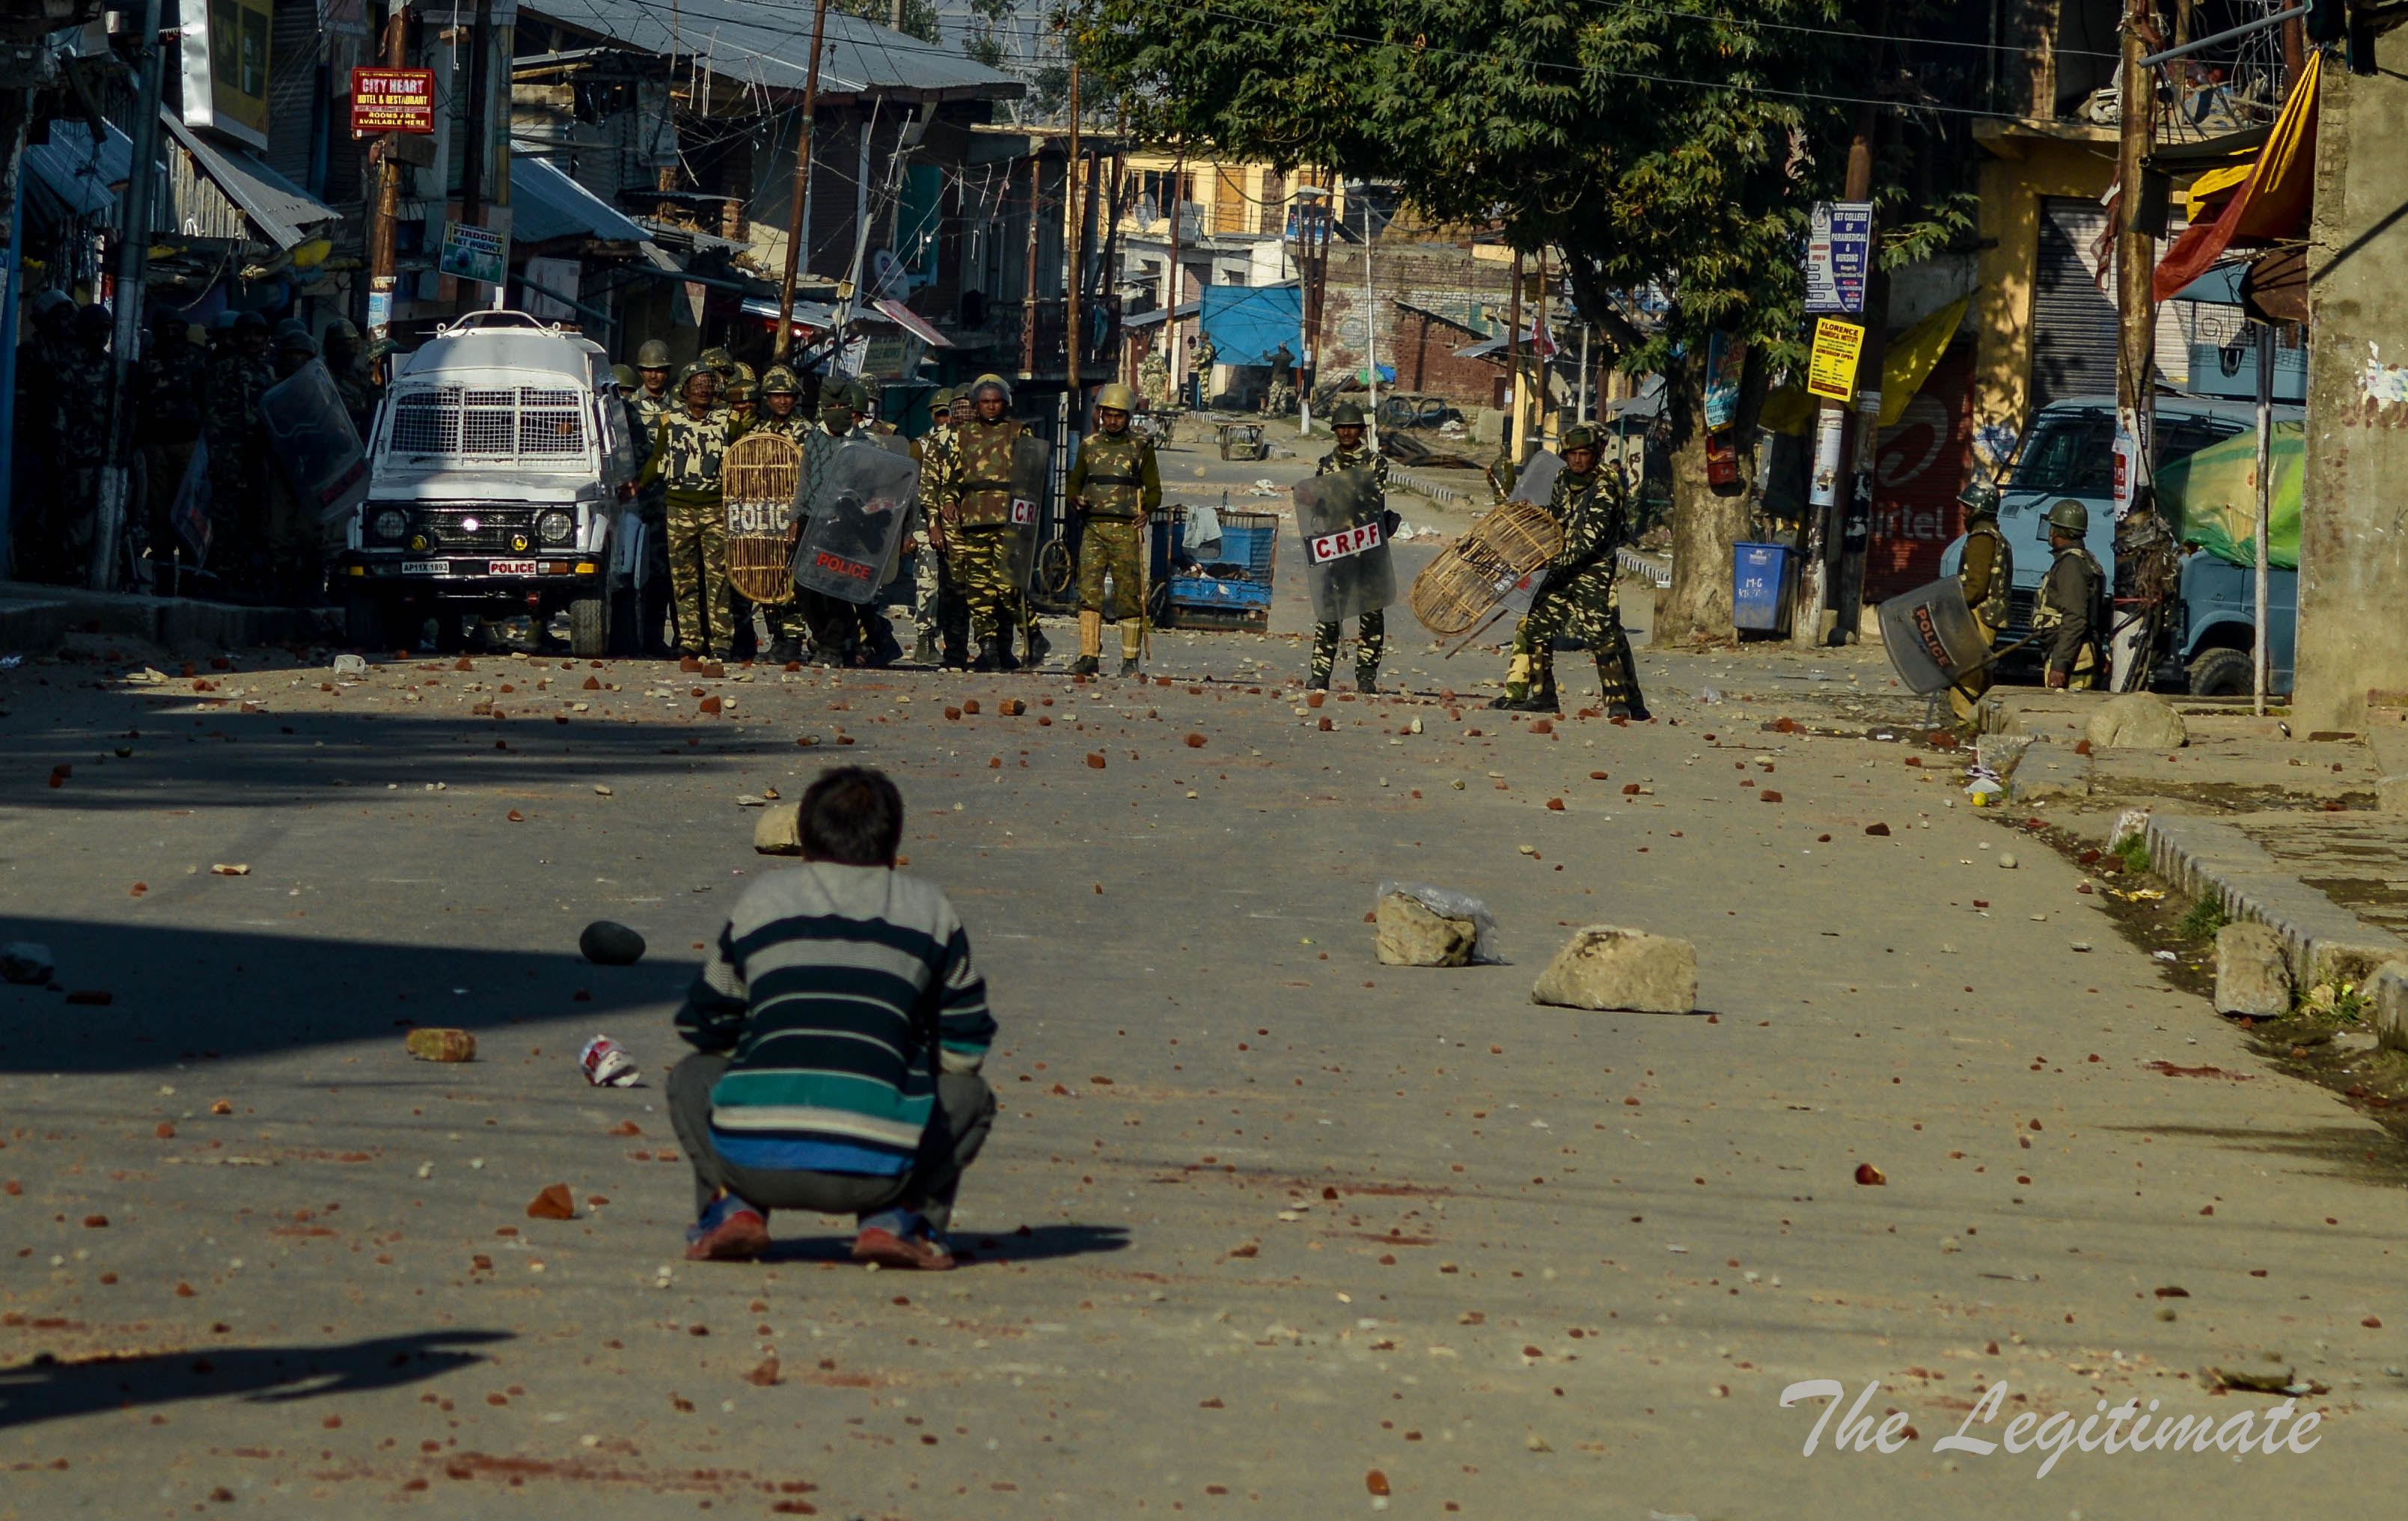 Youth Injured In Stone Pelting